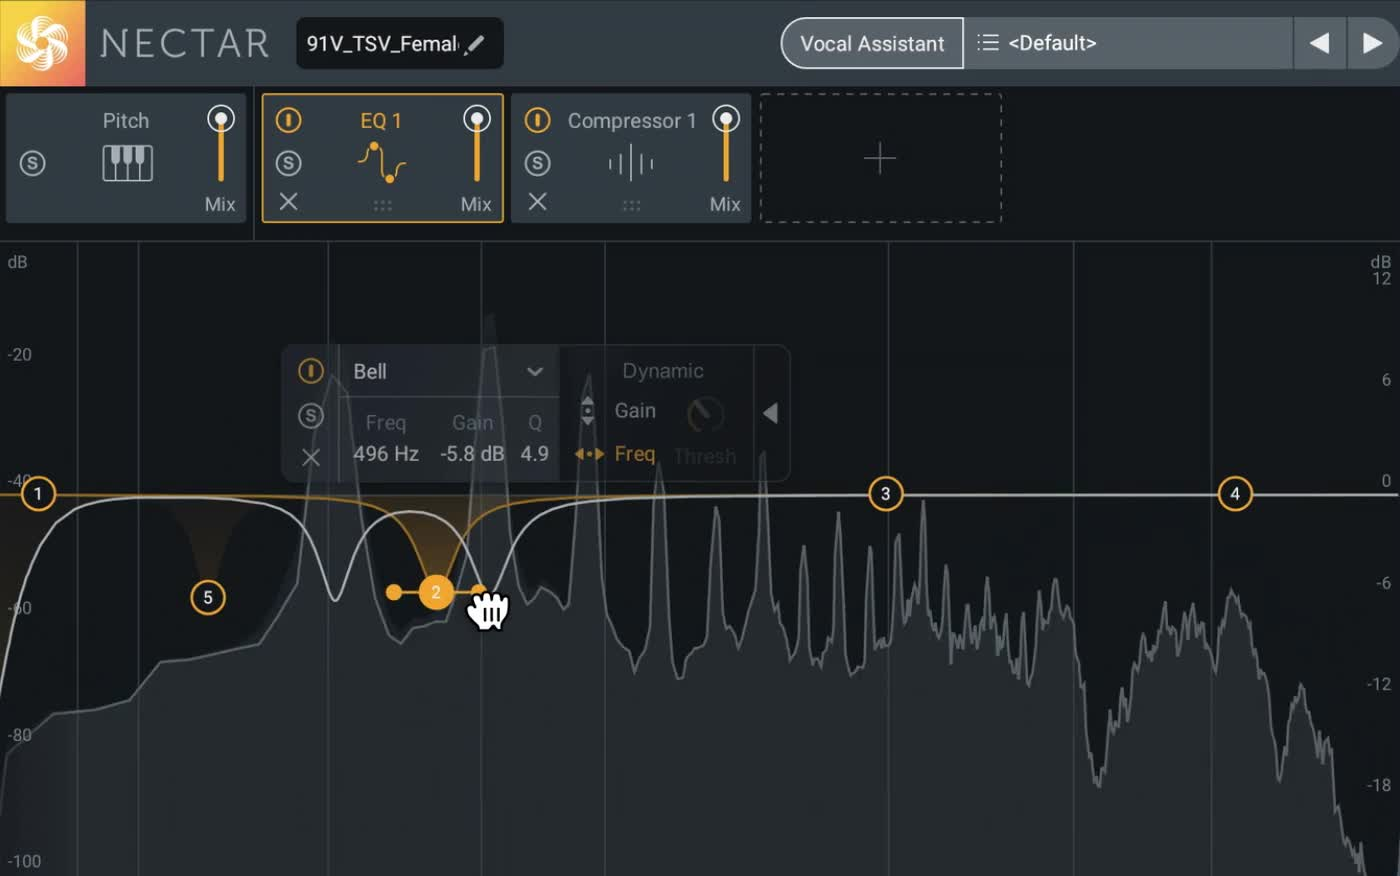 iZotope Nectar 3 Vocal Mixing Plugin